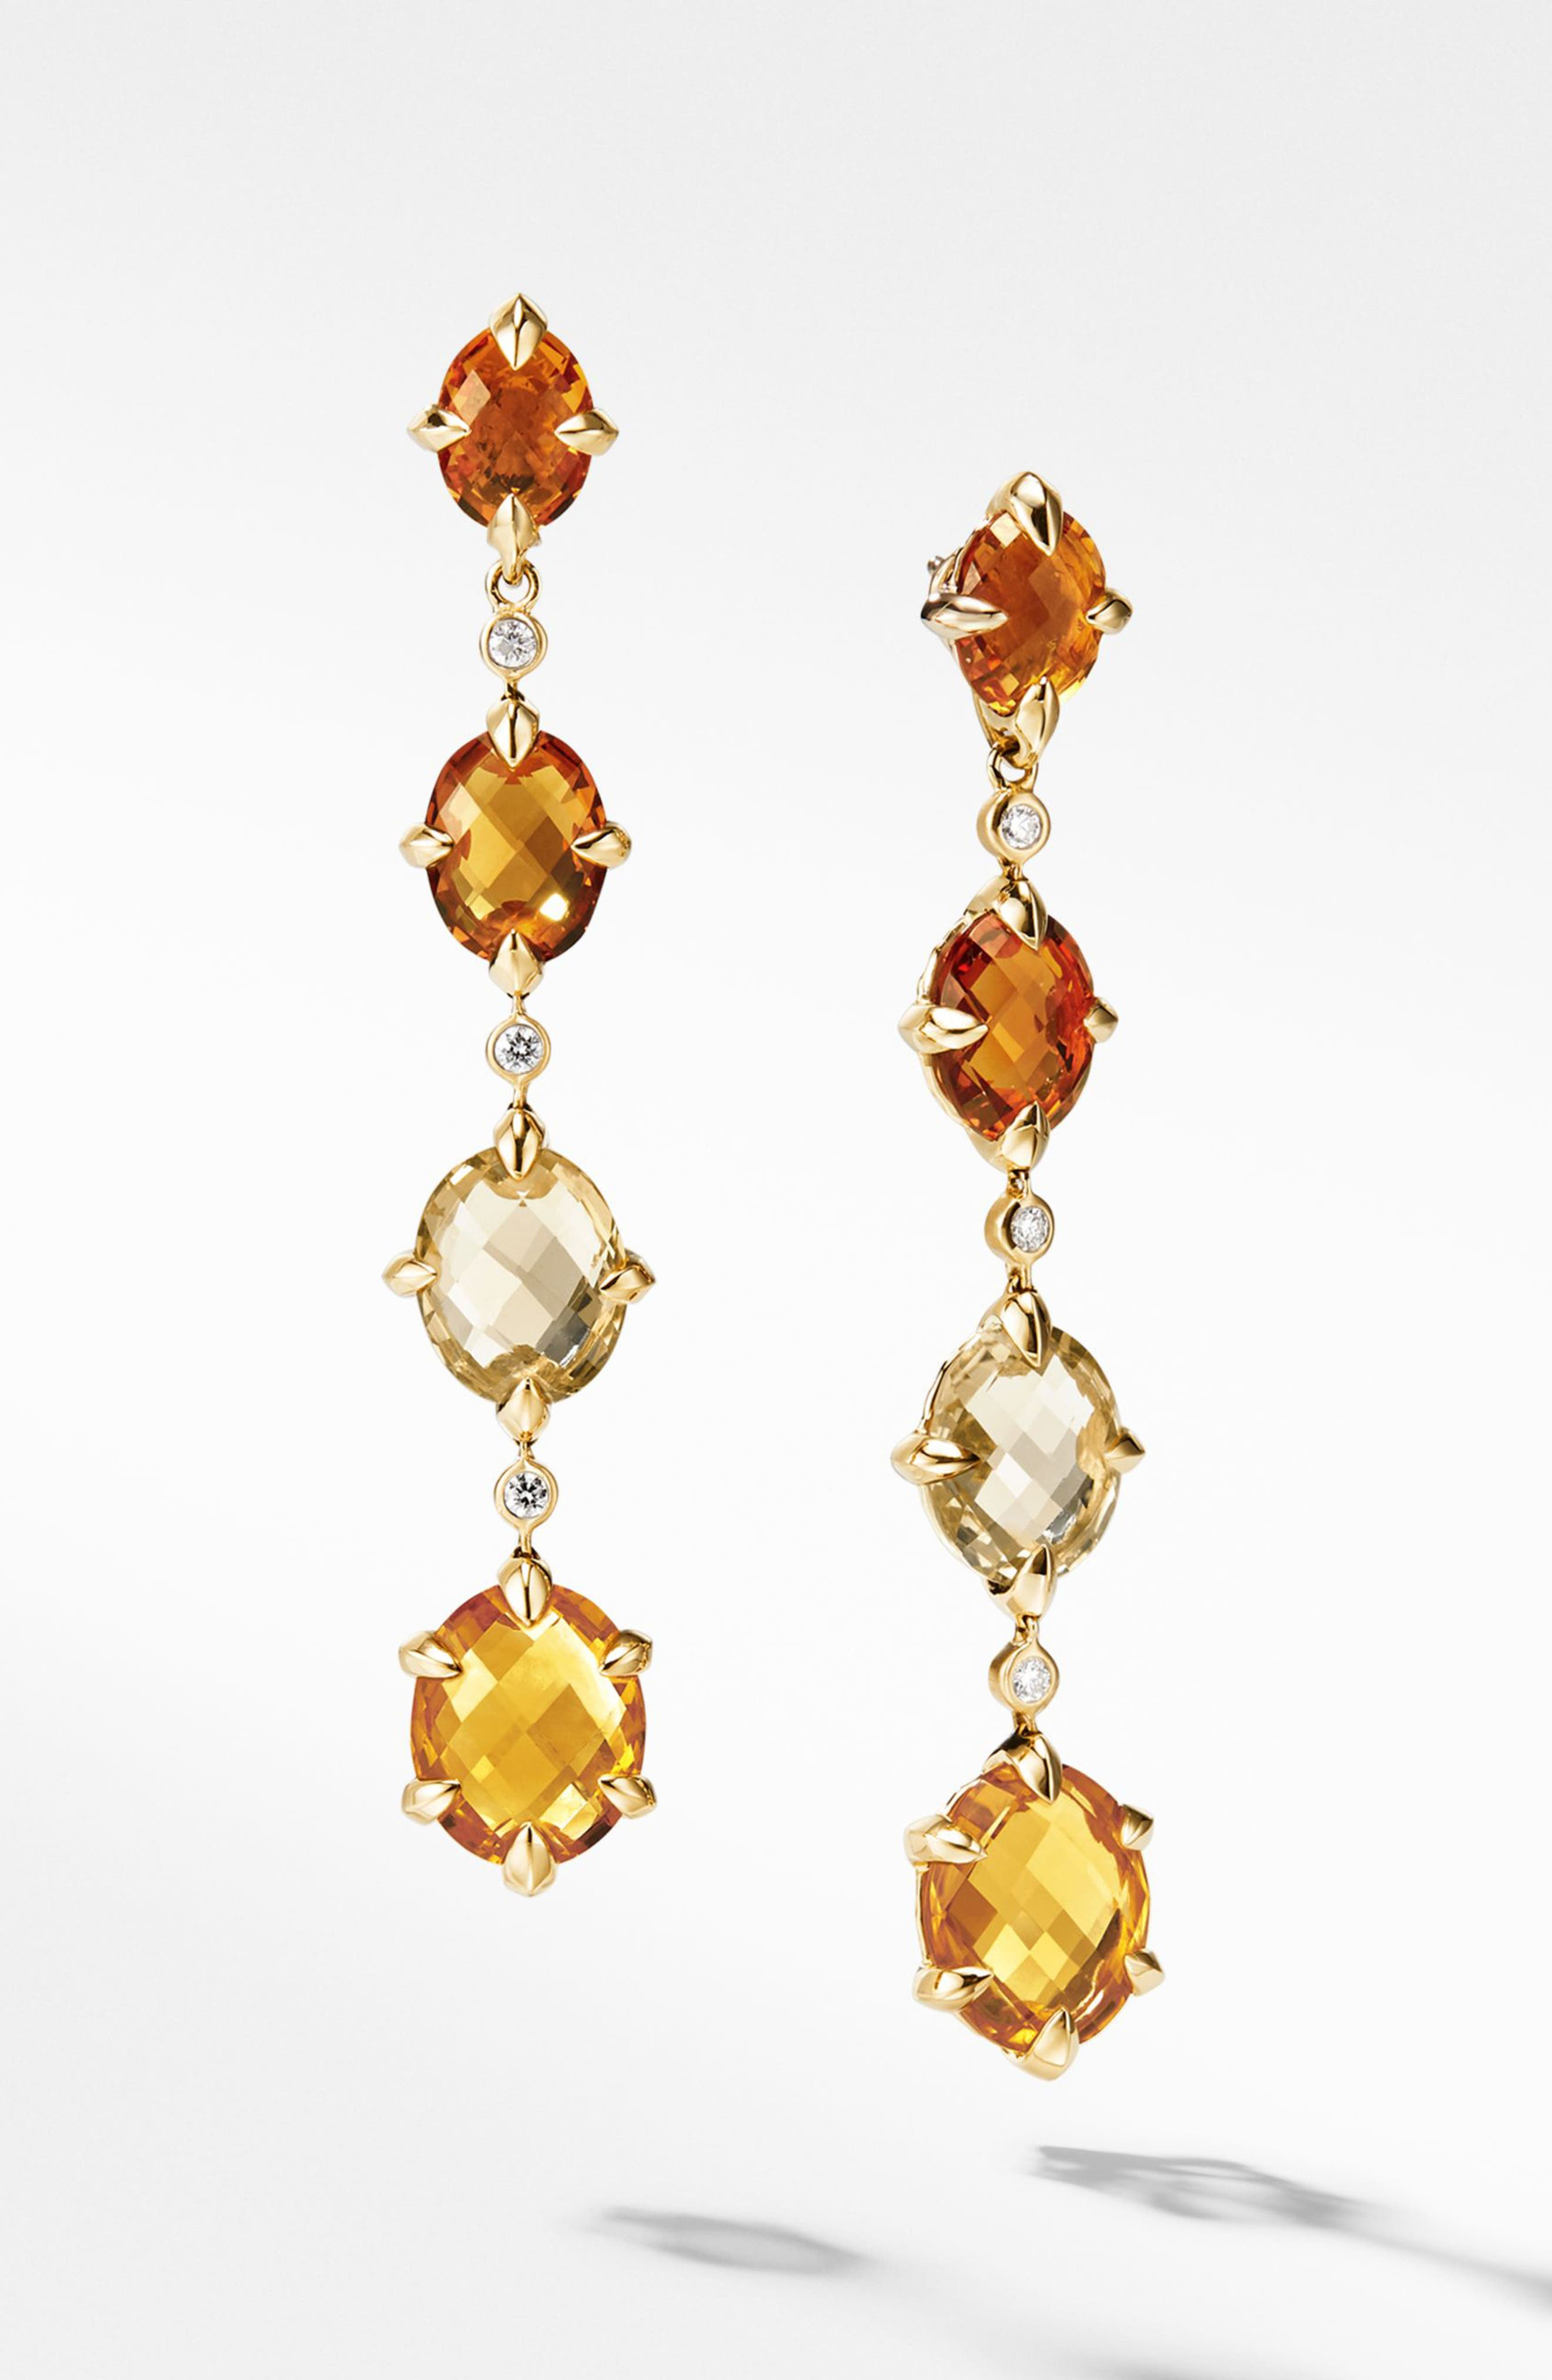 Chatelaine<sup>®</sup> 18k Gold Drop Earrings with Diamonds,                             Main thumbnail 1, color,                             Gold/ Diamond/ Citrine